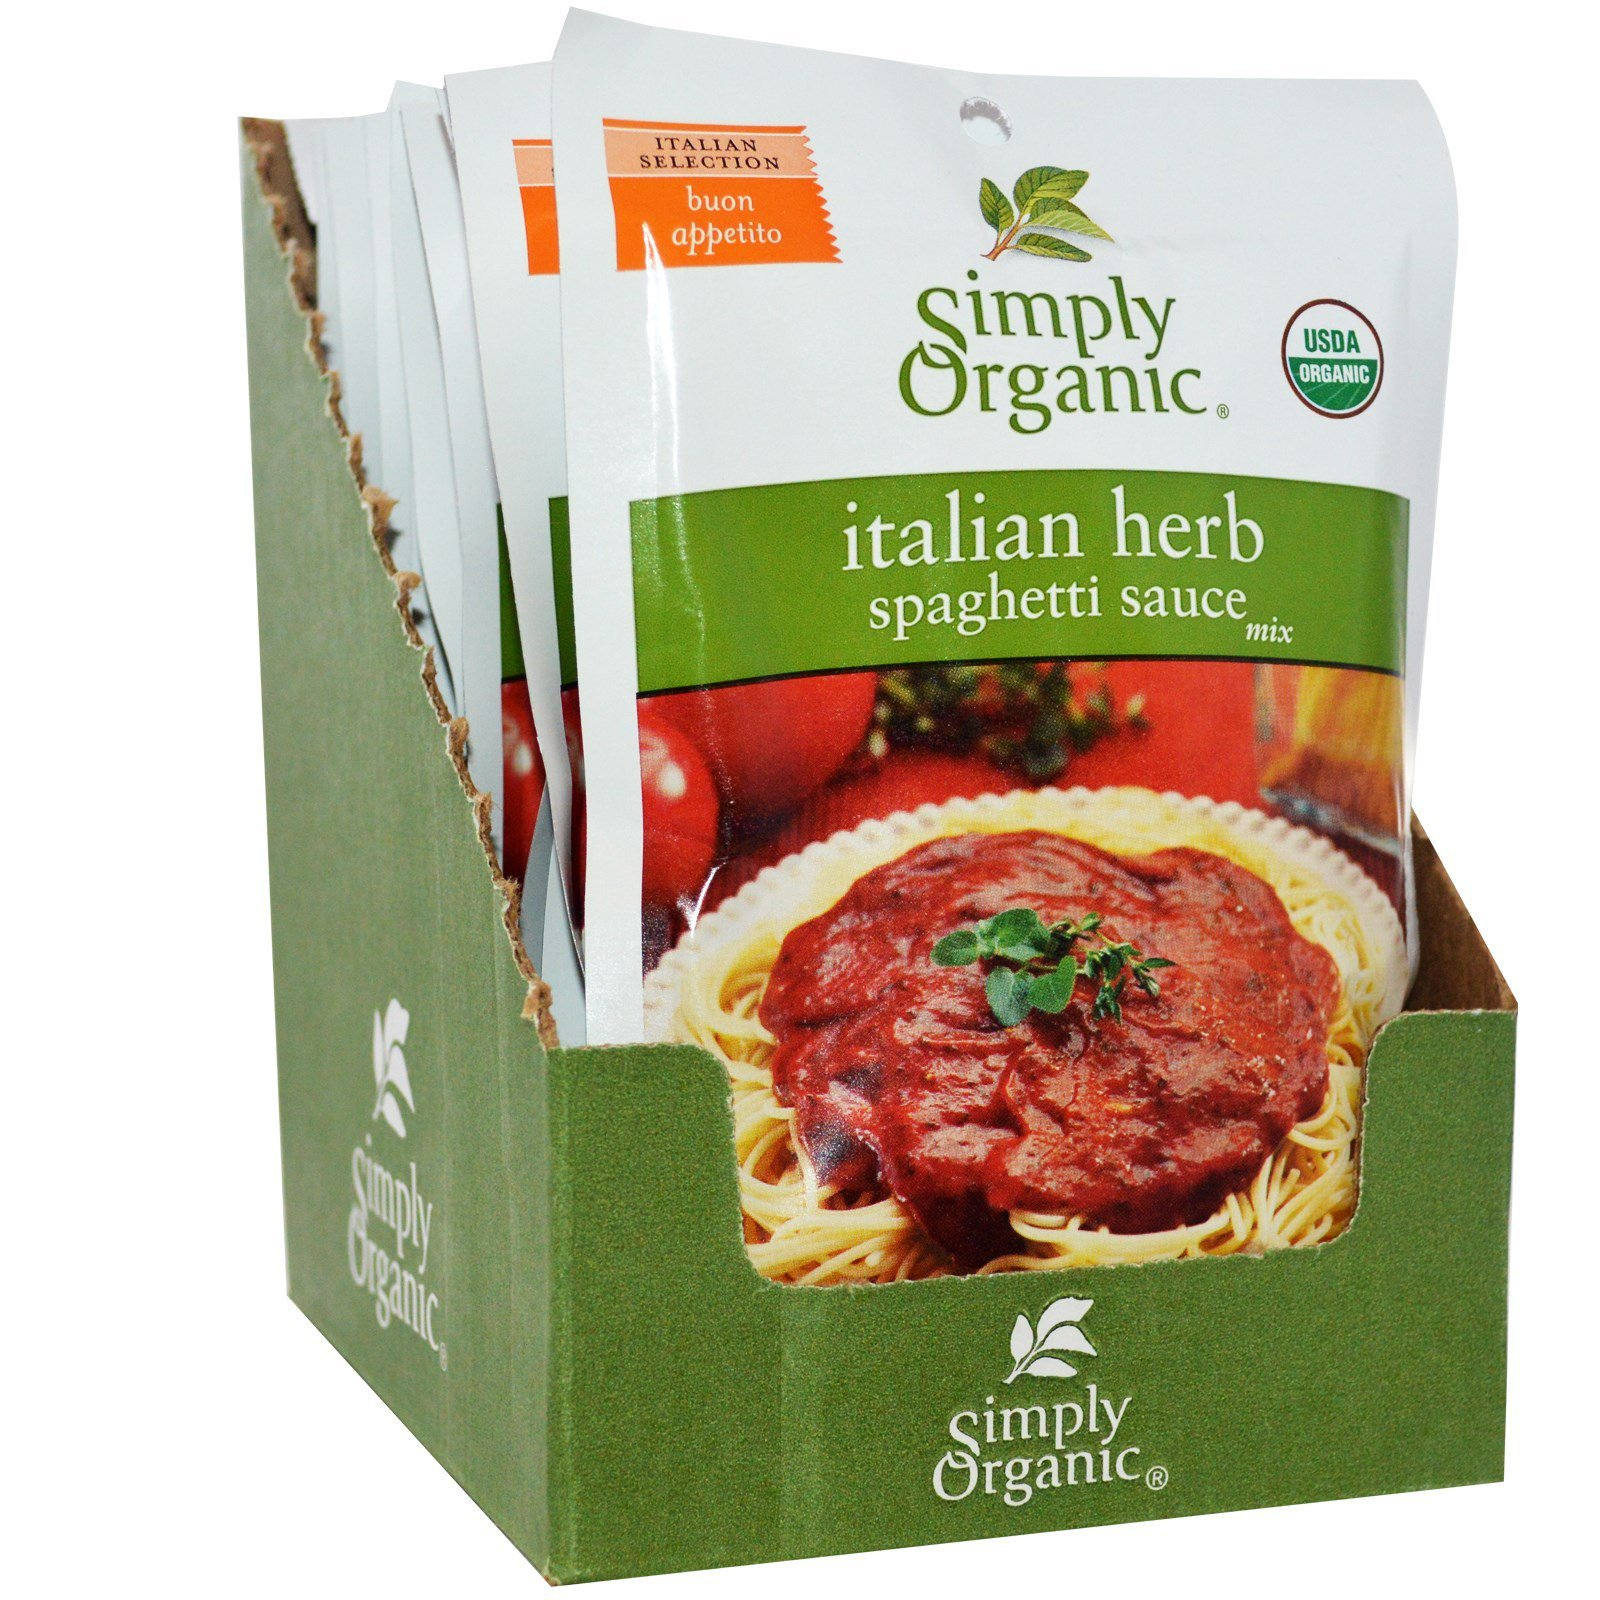 Simply Organic, Italian Herb Spaghetti Sauce Mix, 12 Packets, 1.31 oz ((Pack of 2)